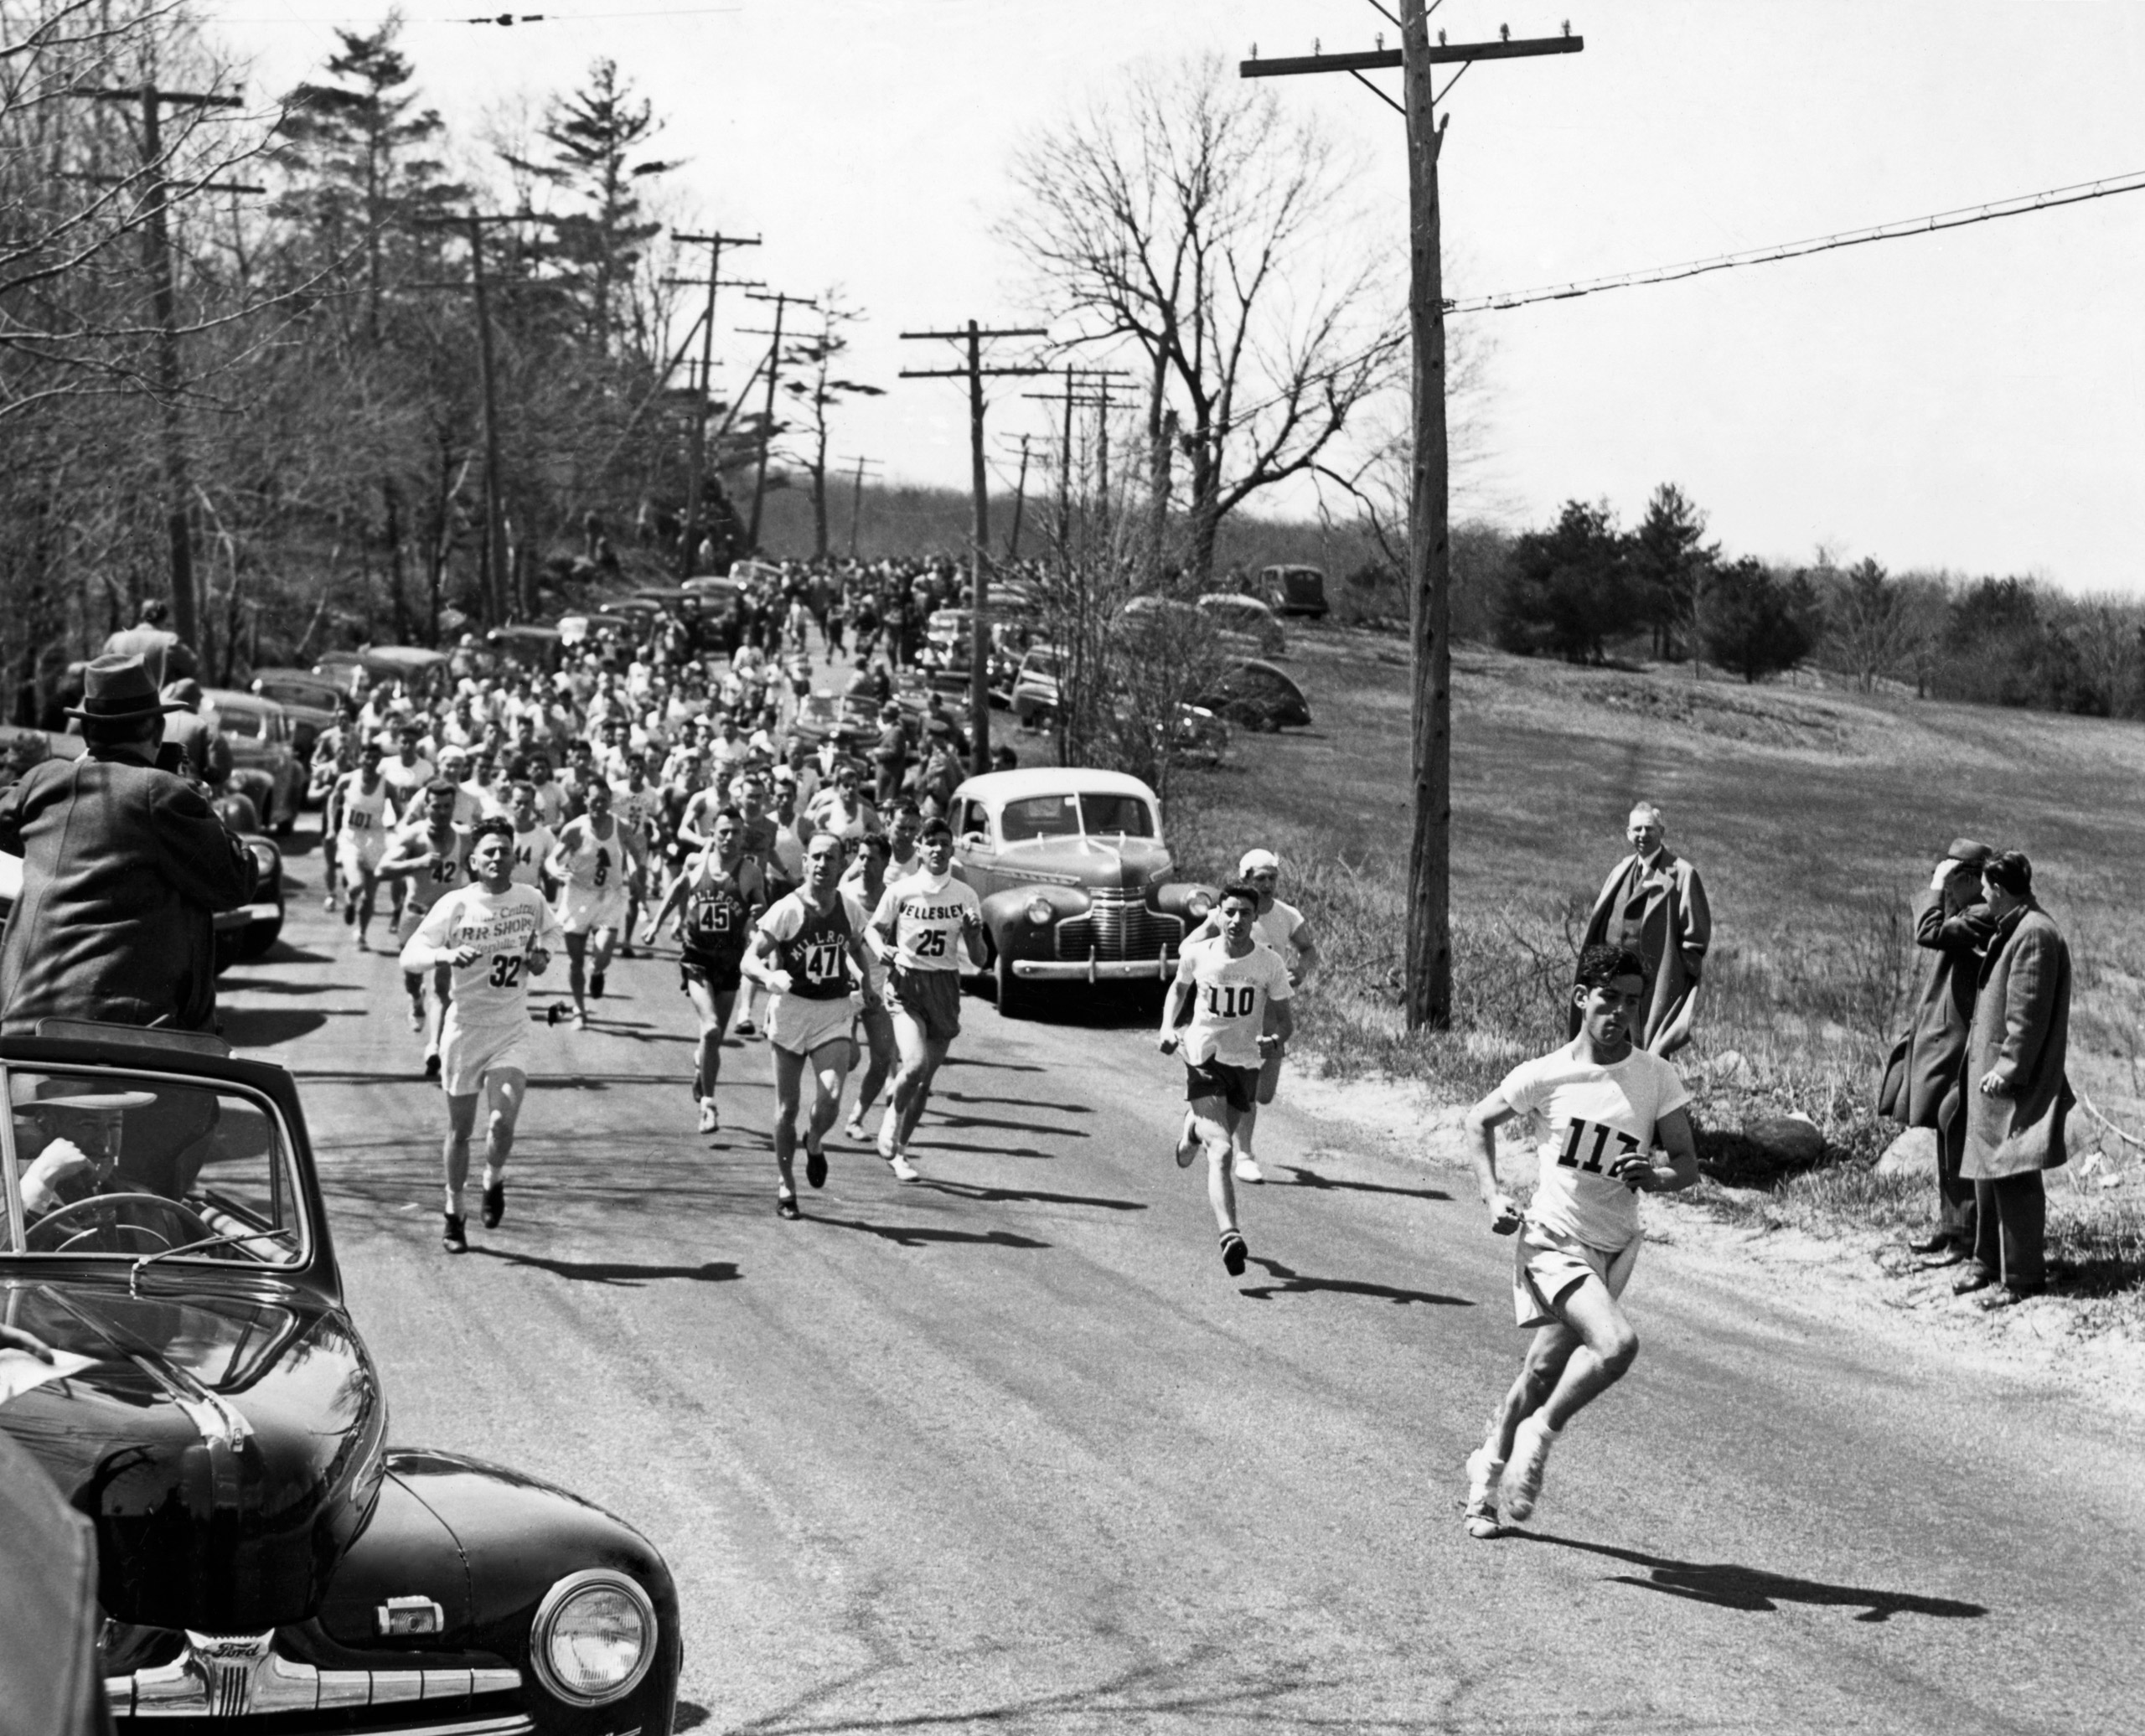 Boston Marathon, 1946. The race was won by Stylianos Kyriakides from Athens, Greece.